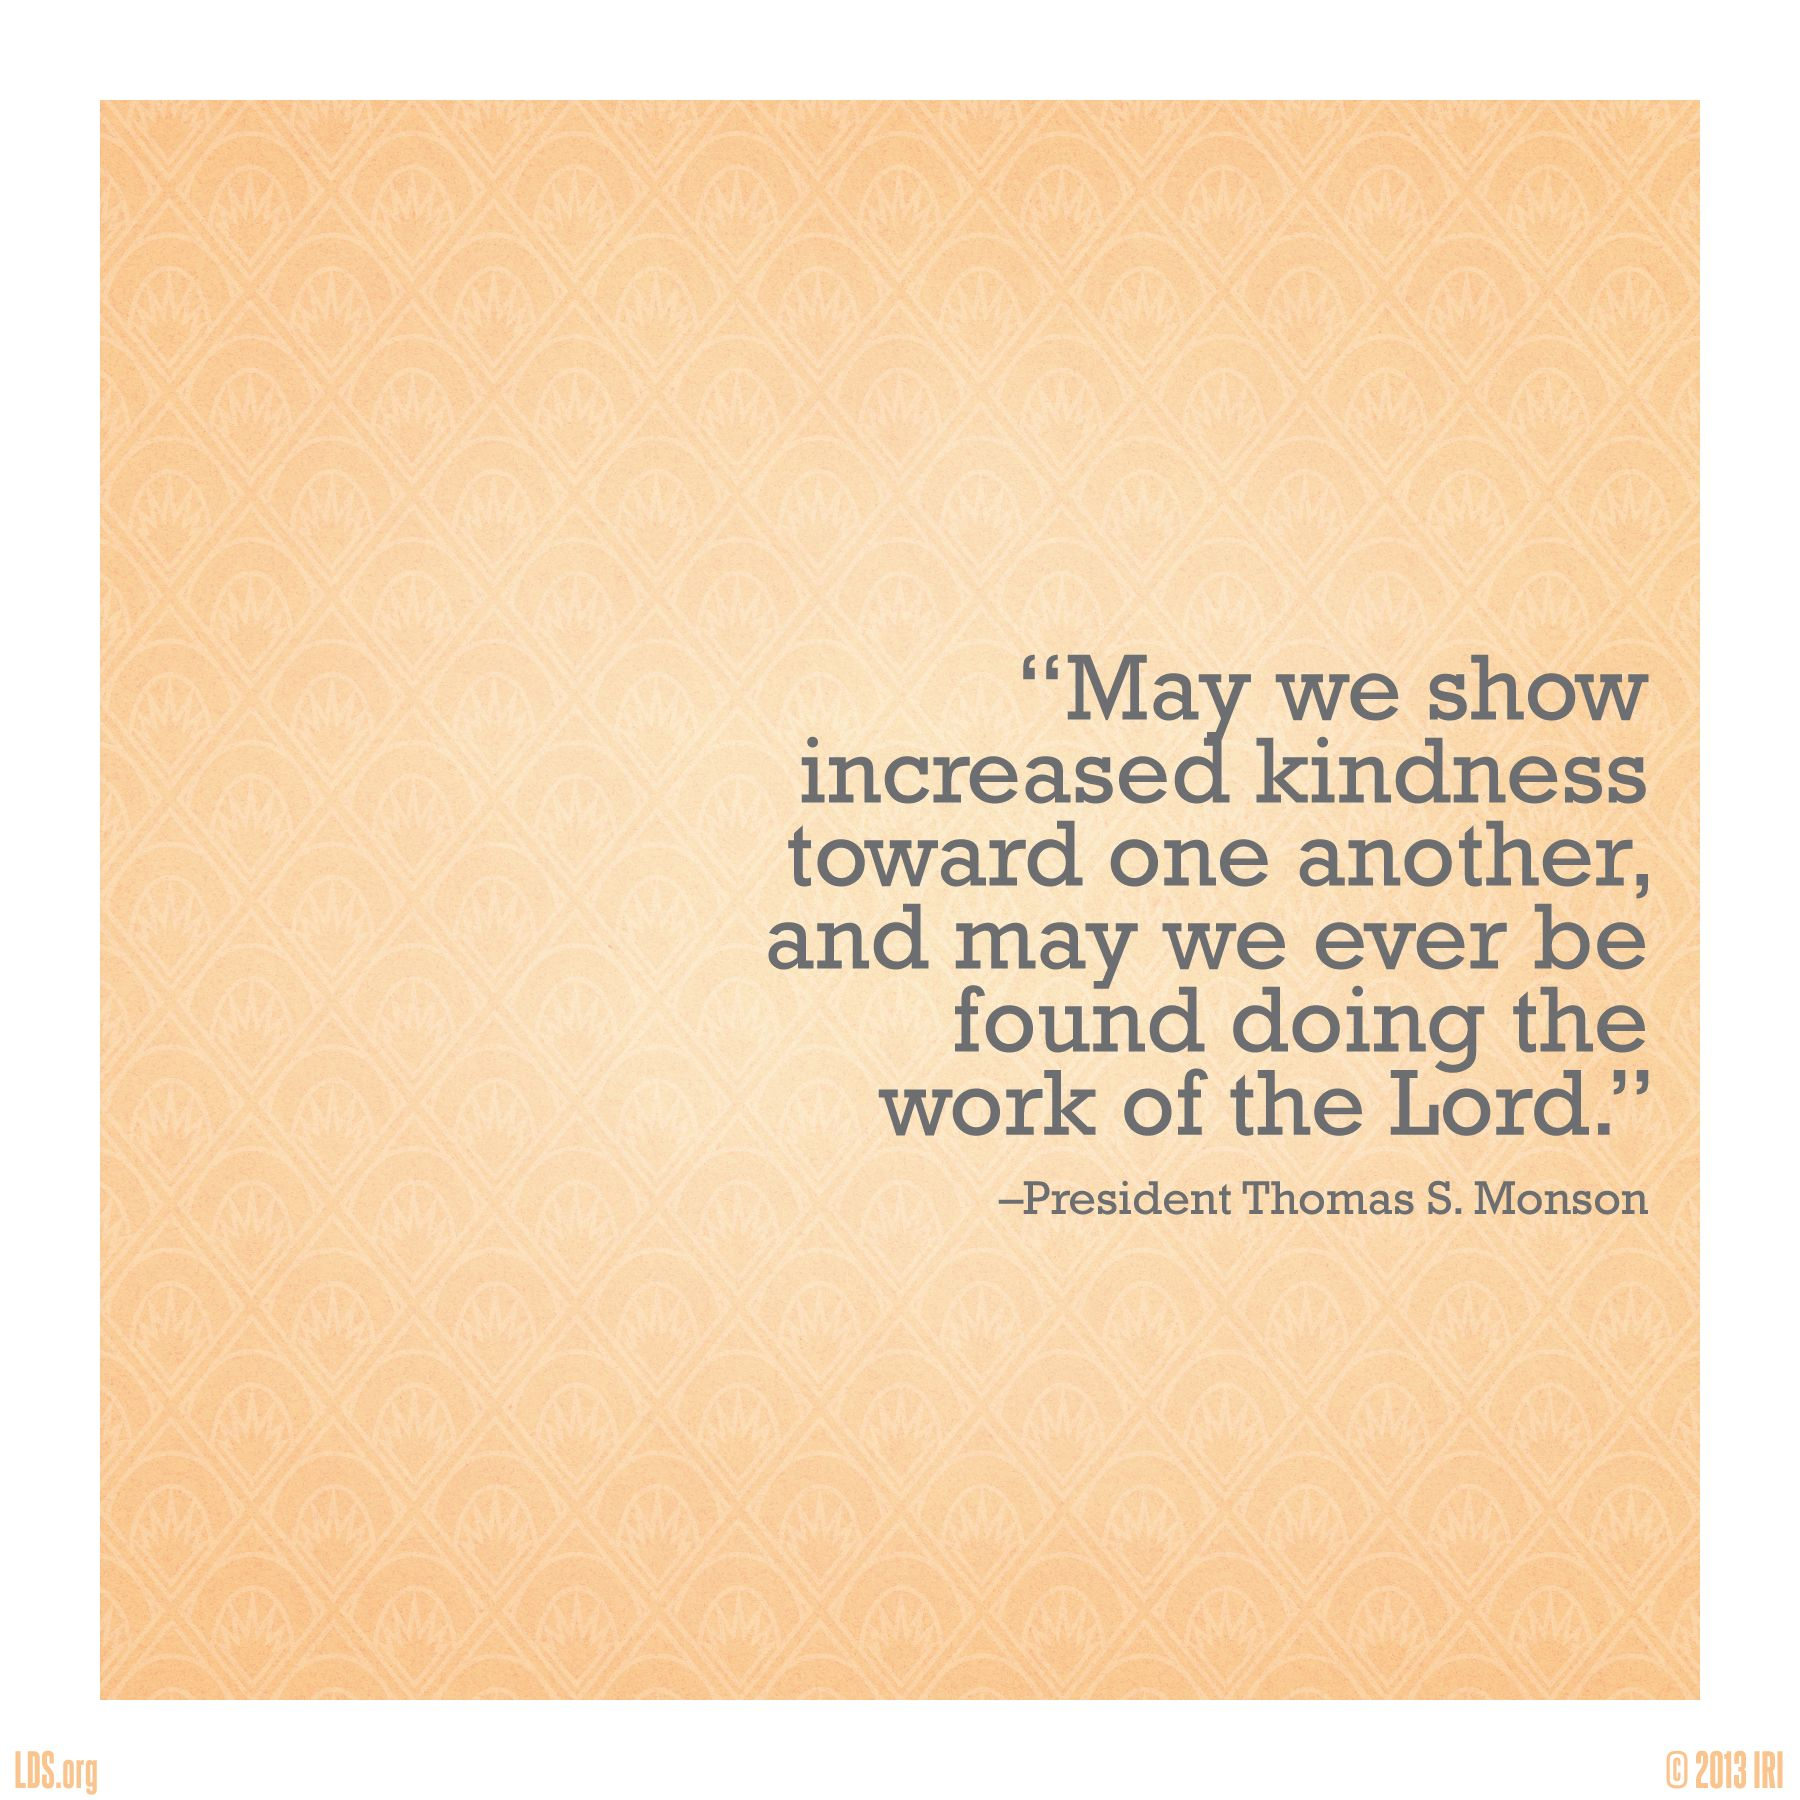 """""""May we show increased kindness toward one another, and may we ever be found doing the work of the Lord."""" –President Thomas S. Monson"""